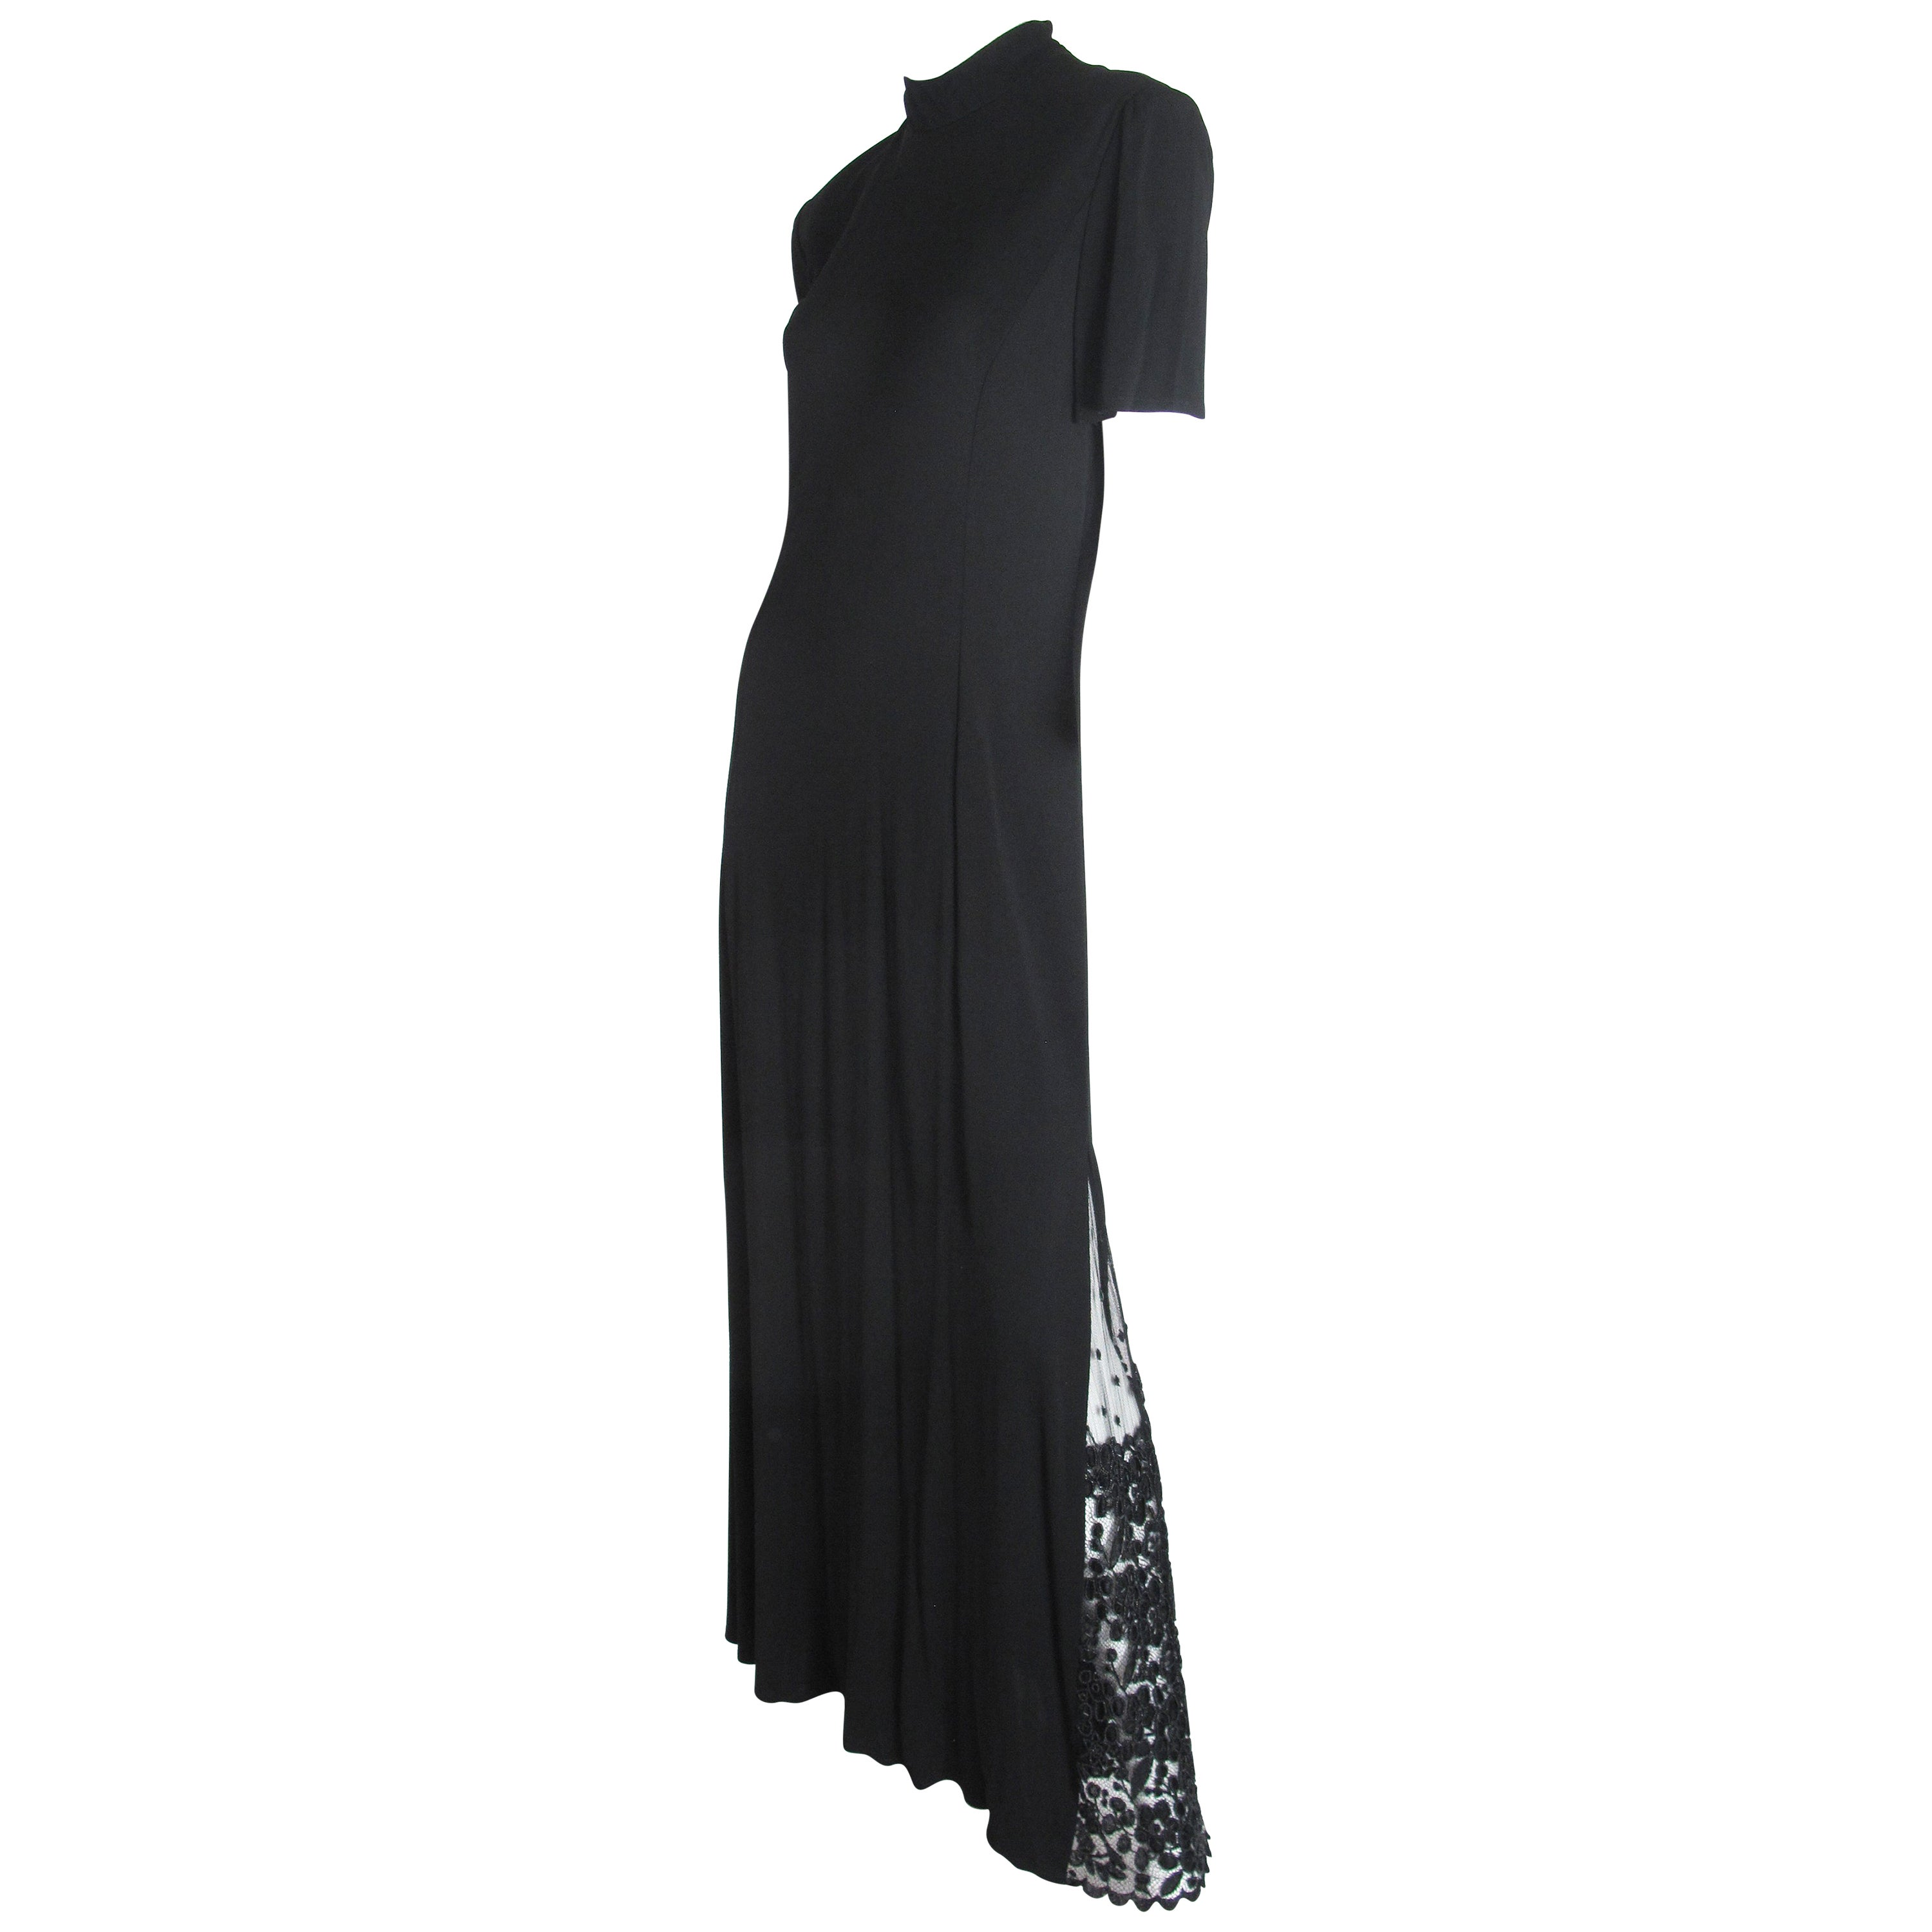 Badgley Mischka Black Evening Gown with Lace Insert